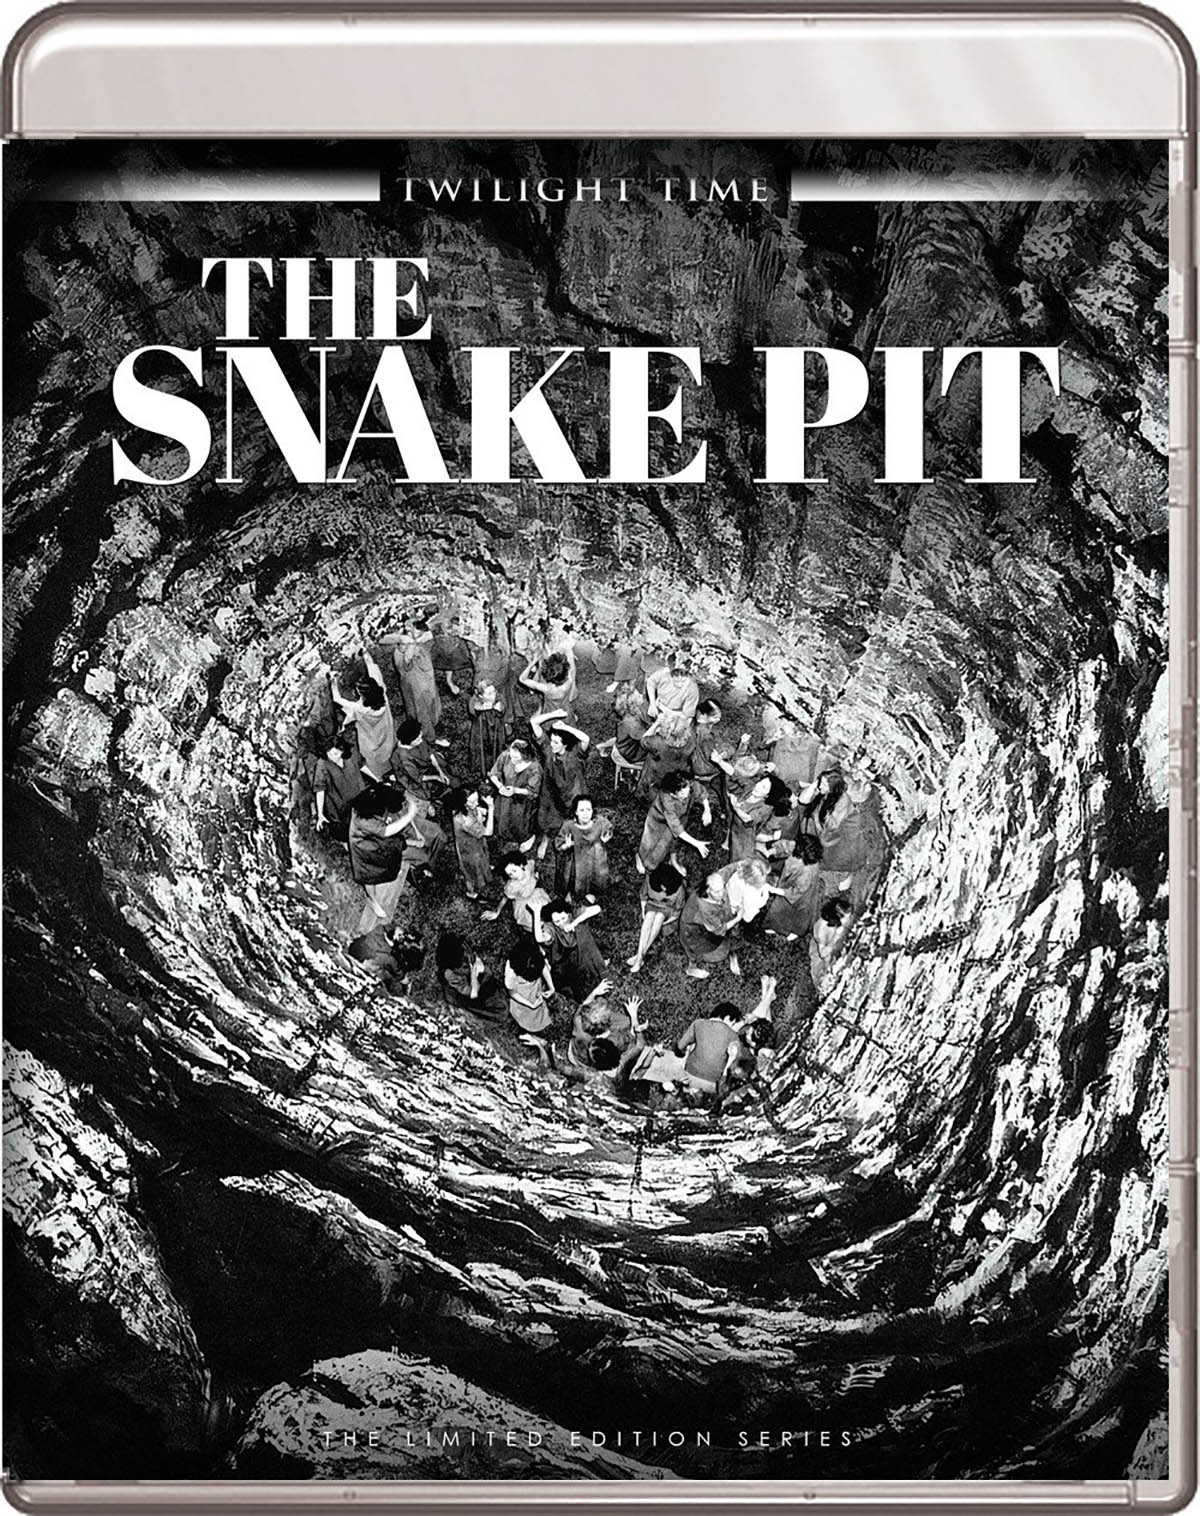 Radio Helsinki 8 129 Photos 97 Reviews Company Pikku Review Anatole Litvak S The Snake Pit On Twilight Time Blu Ray